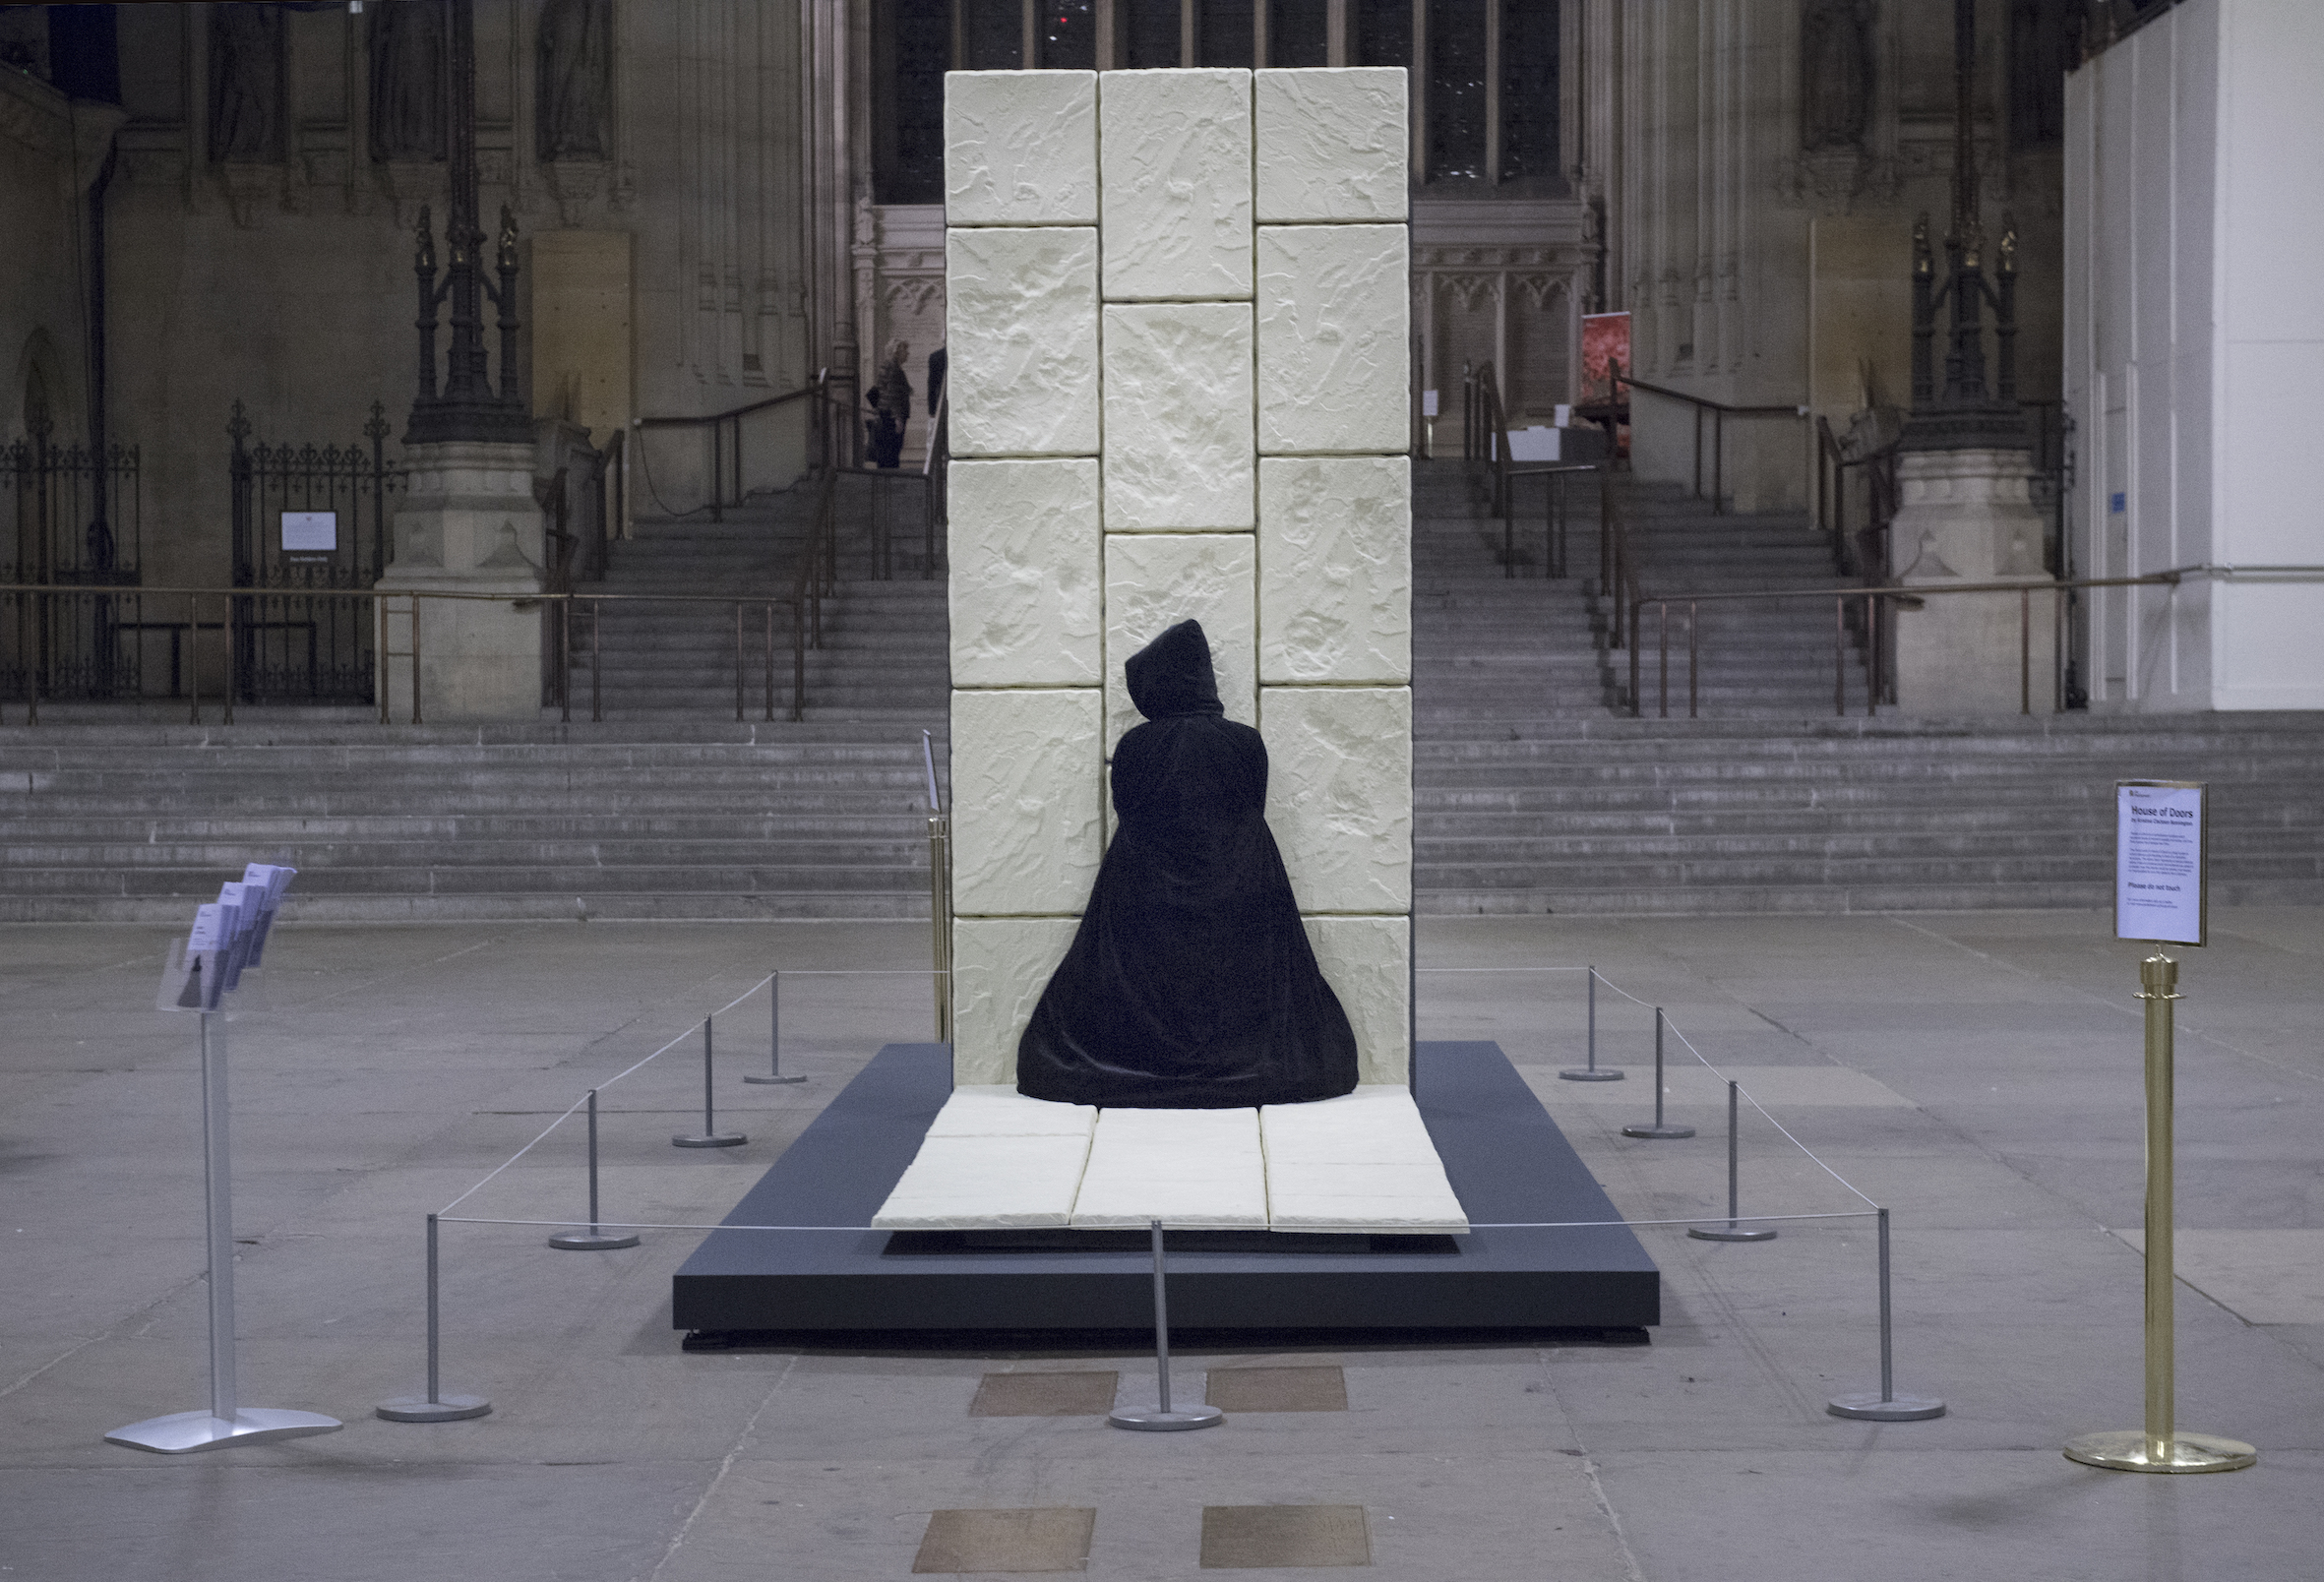 Sculpture opens Westminster doors